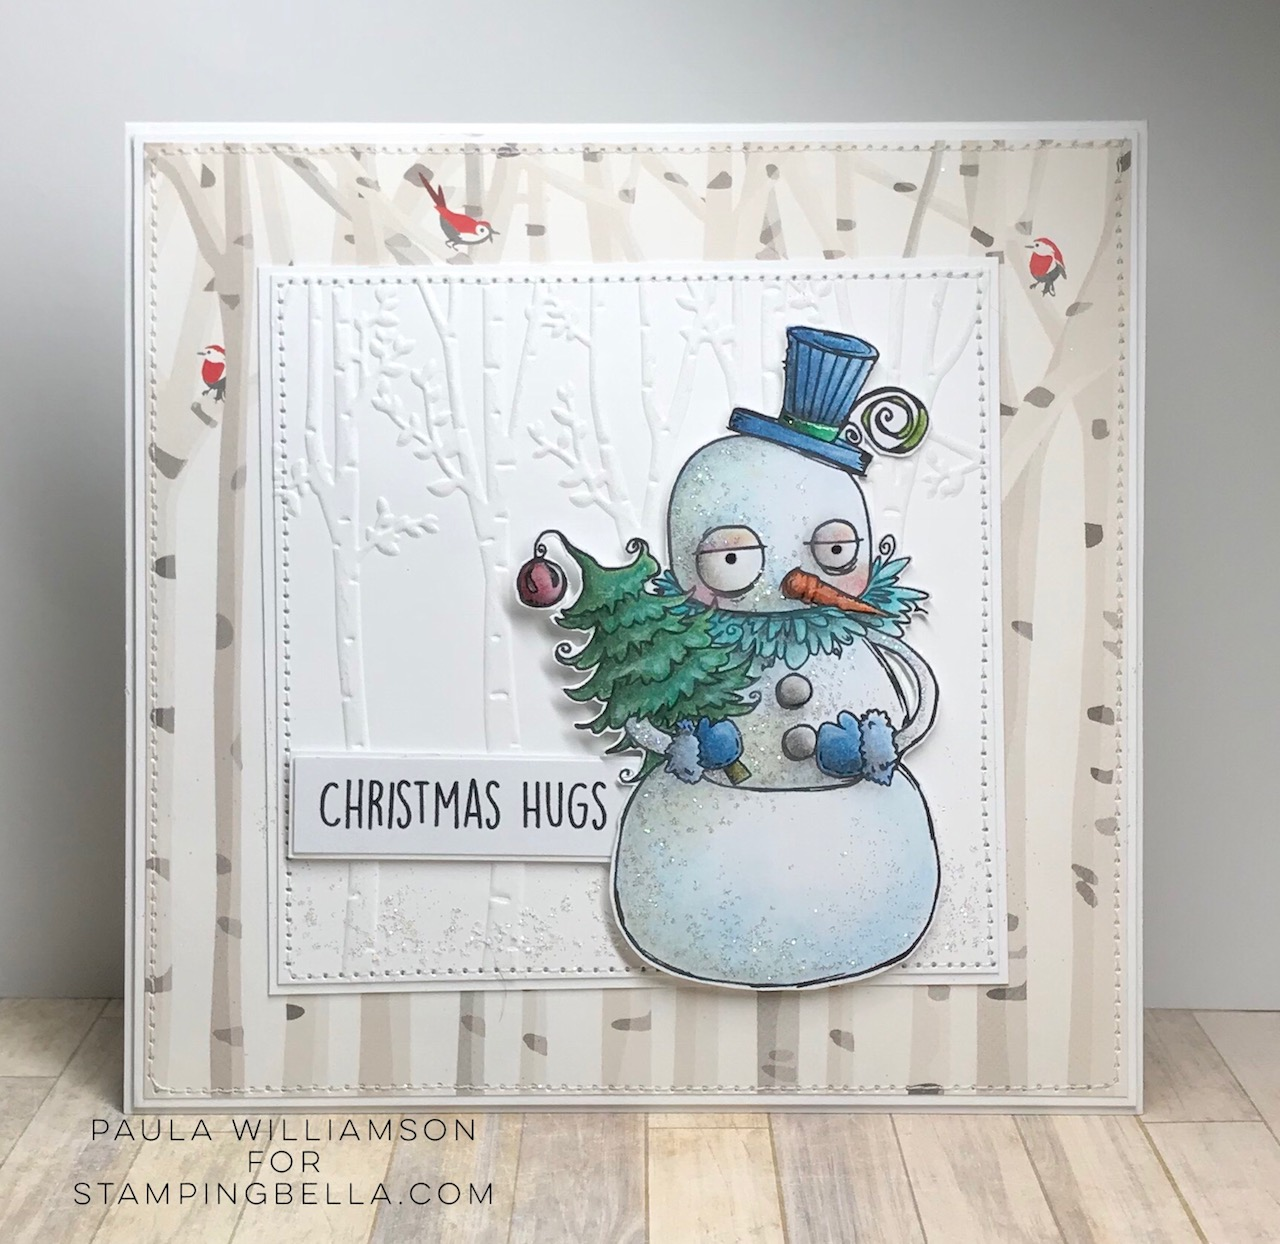 www.stampingbella.com: RUBBER STAMP USED: ODDBALL SNOWMAN card by Paula Williamson